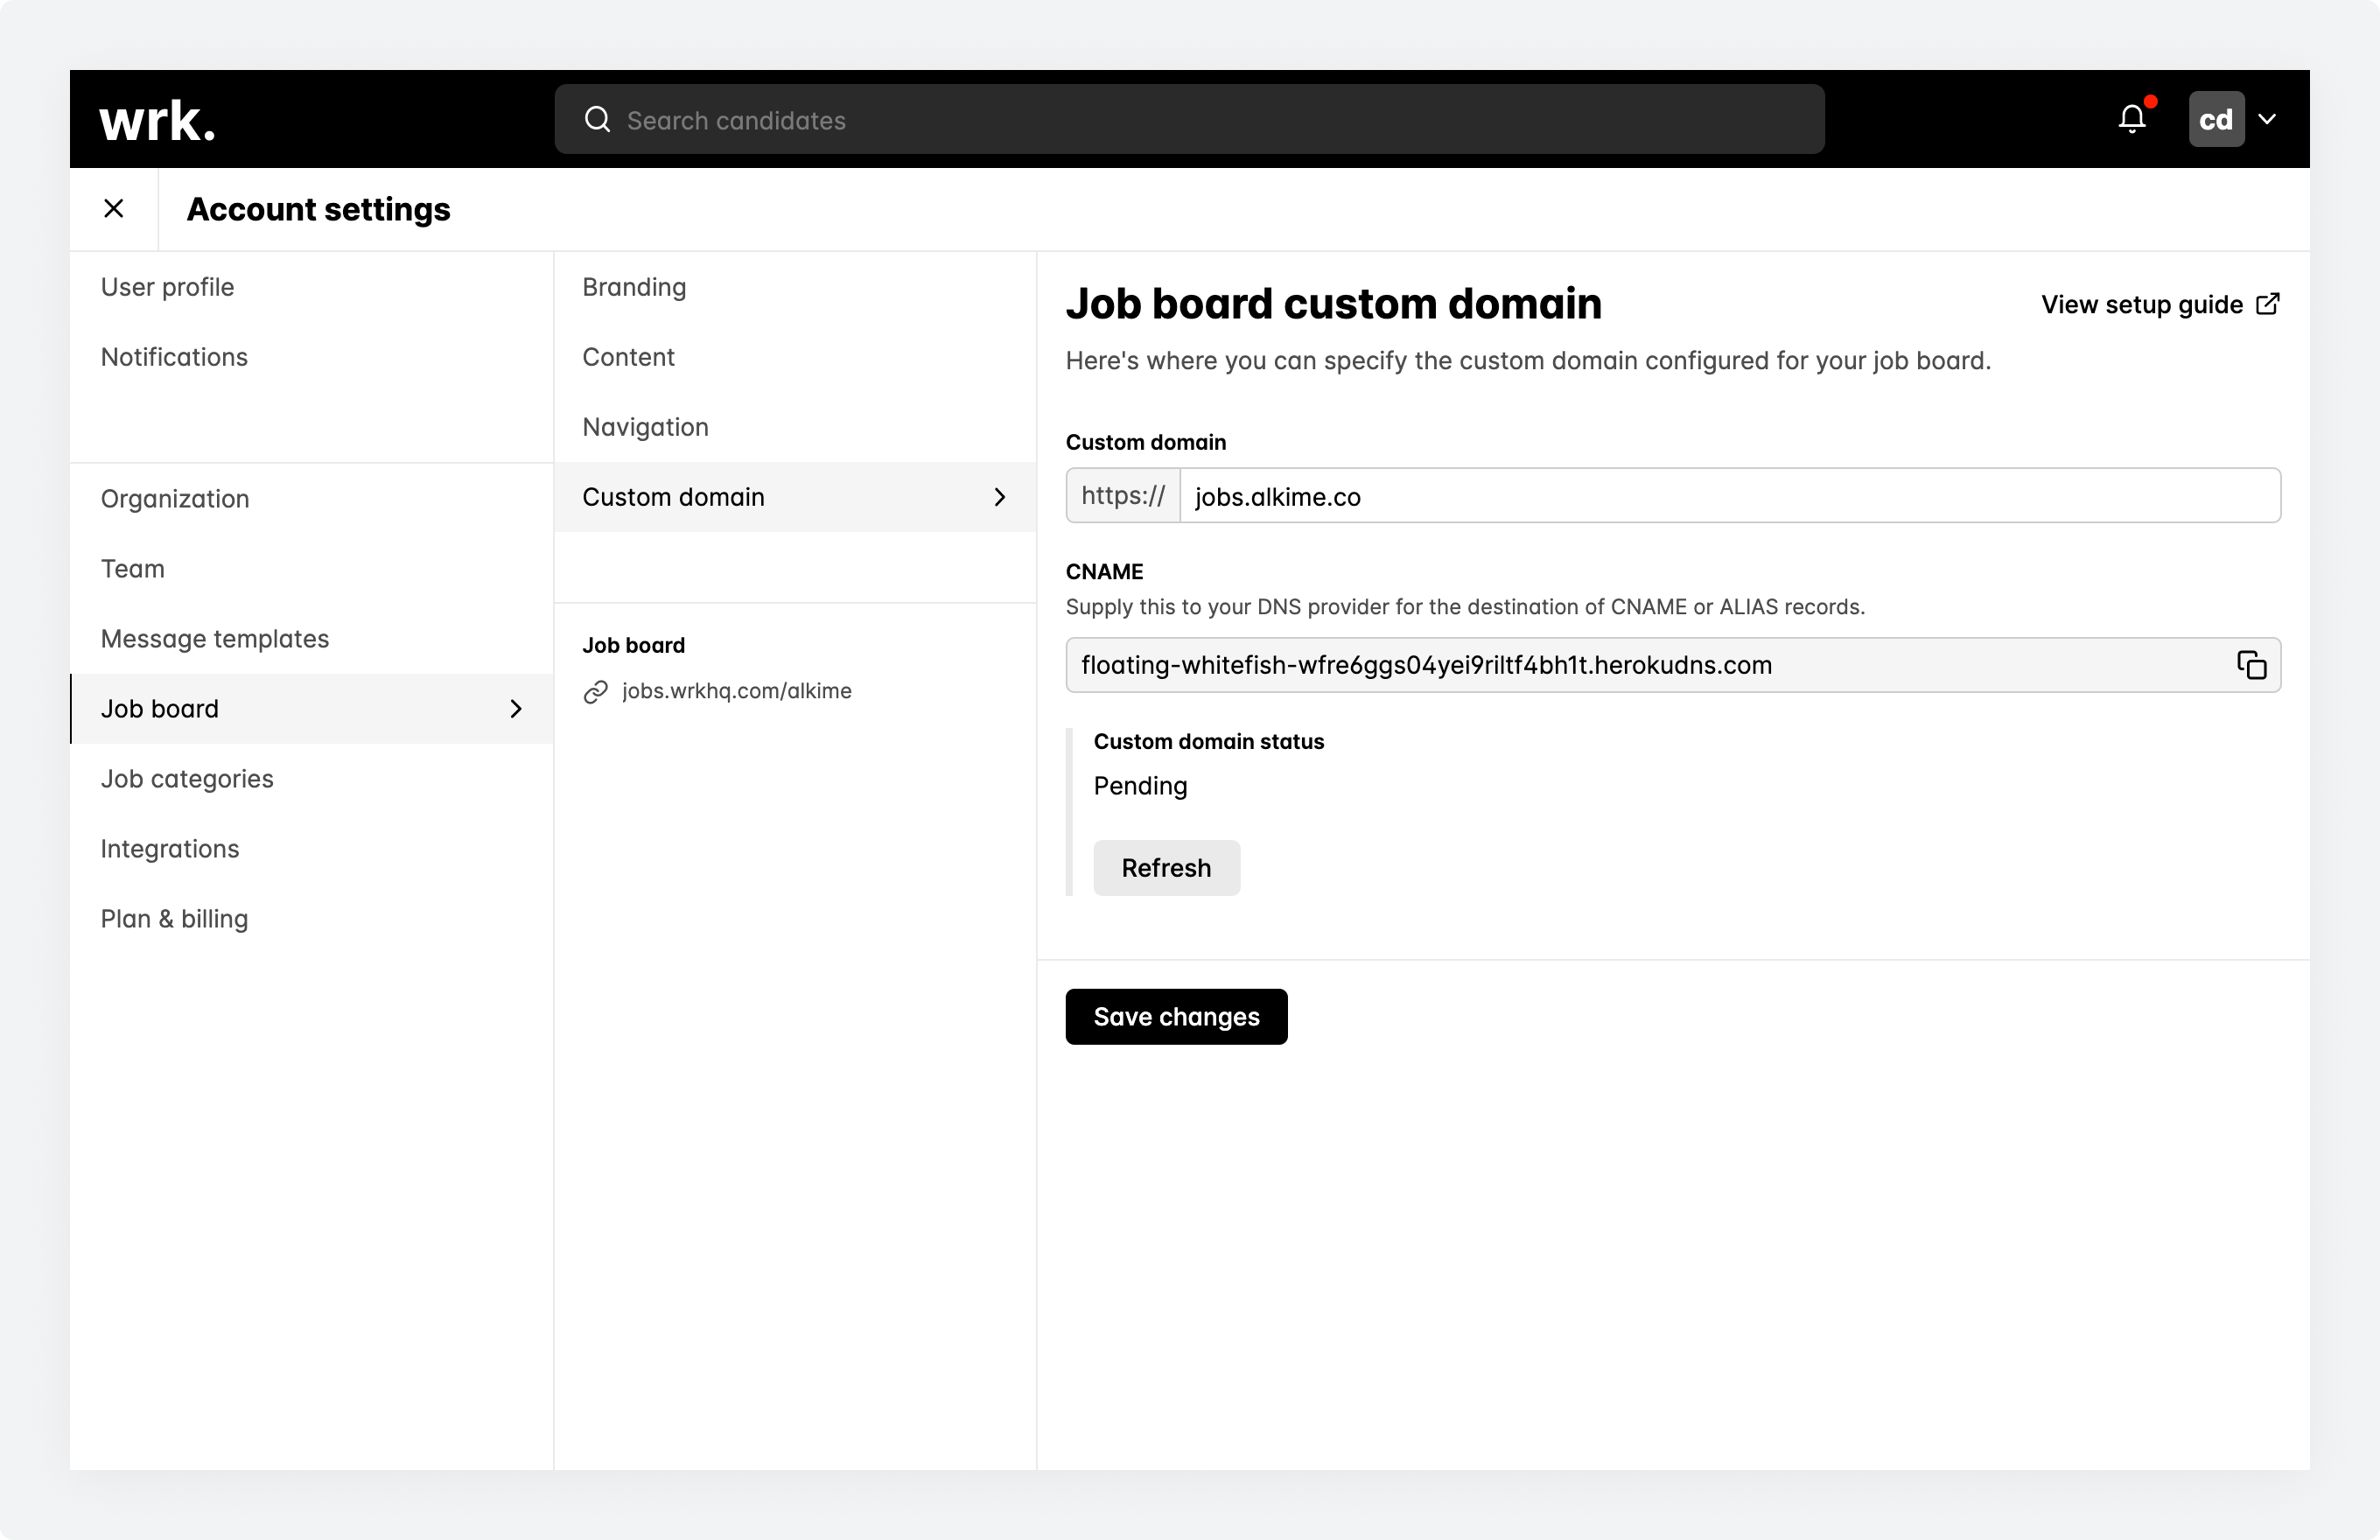 The job board custom domain screen within Wrk with a custom domain define and and pending status being displayed.